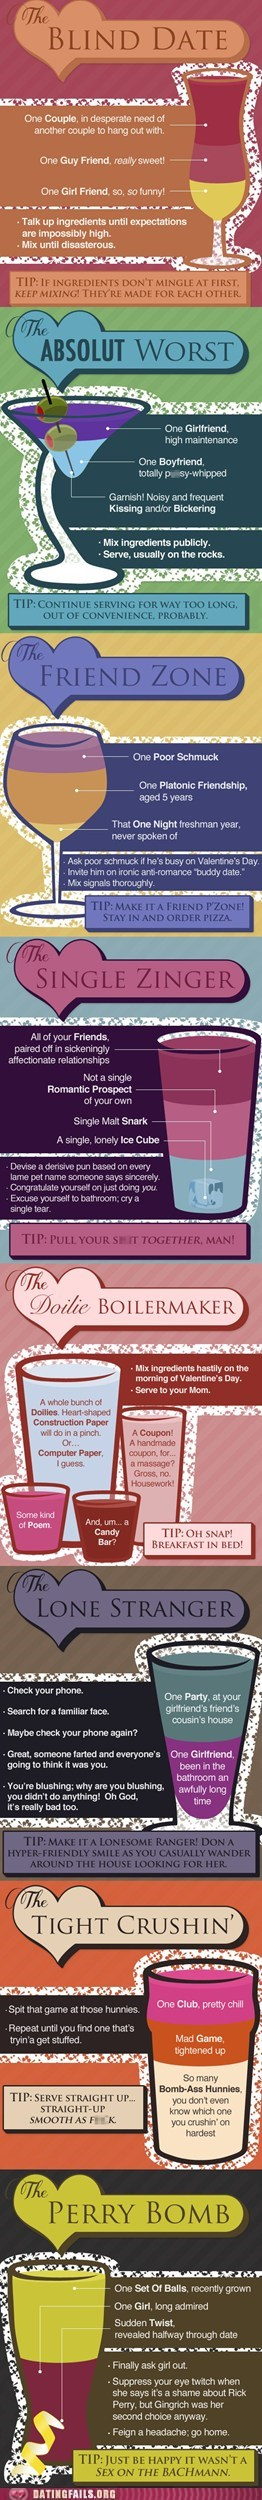 drinking forever alone friend zone infographic Valentines day - 5813245440